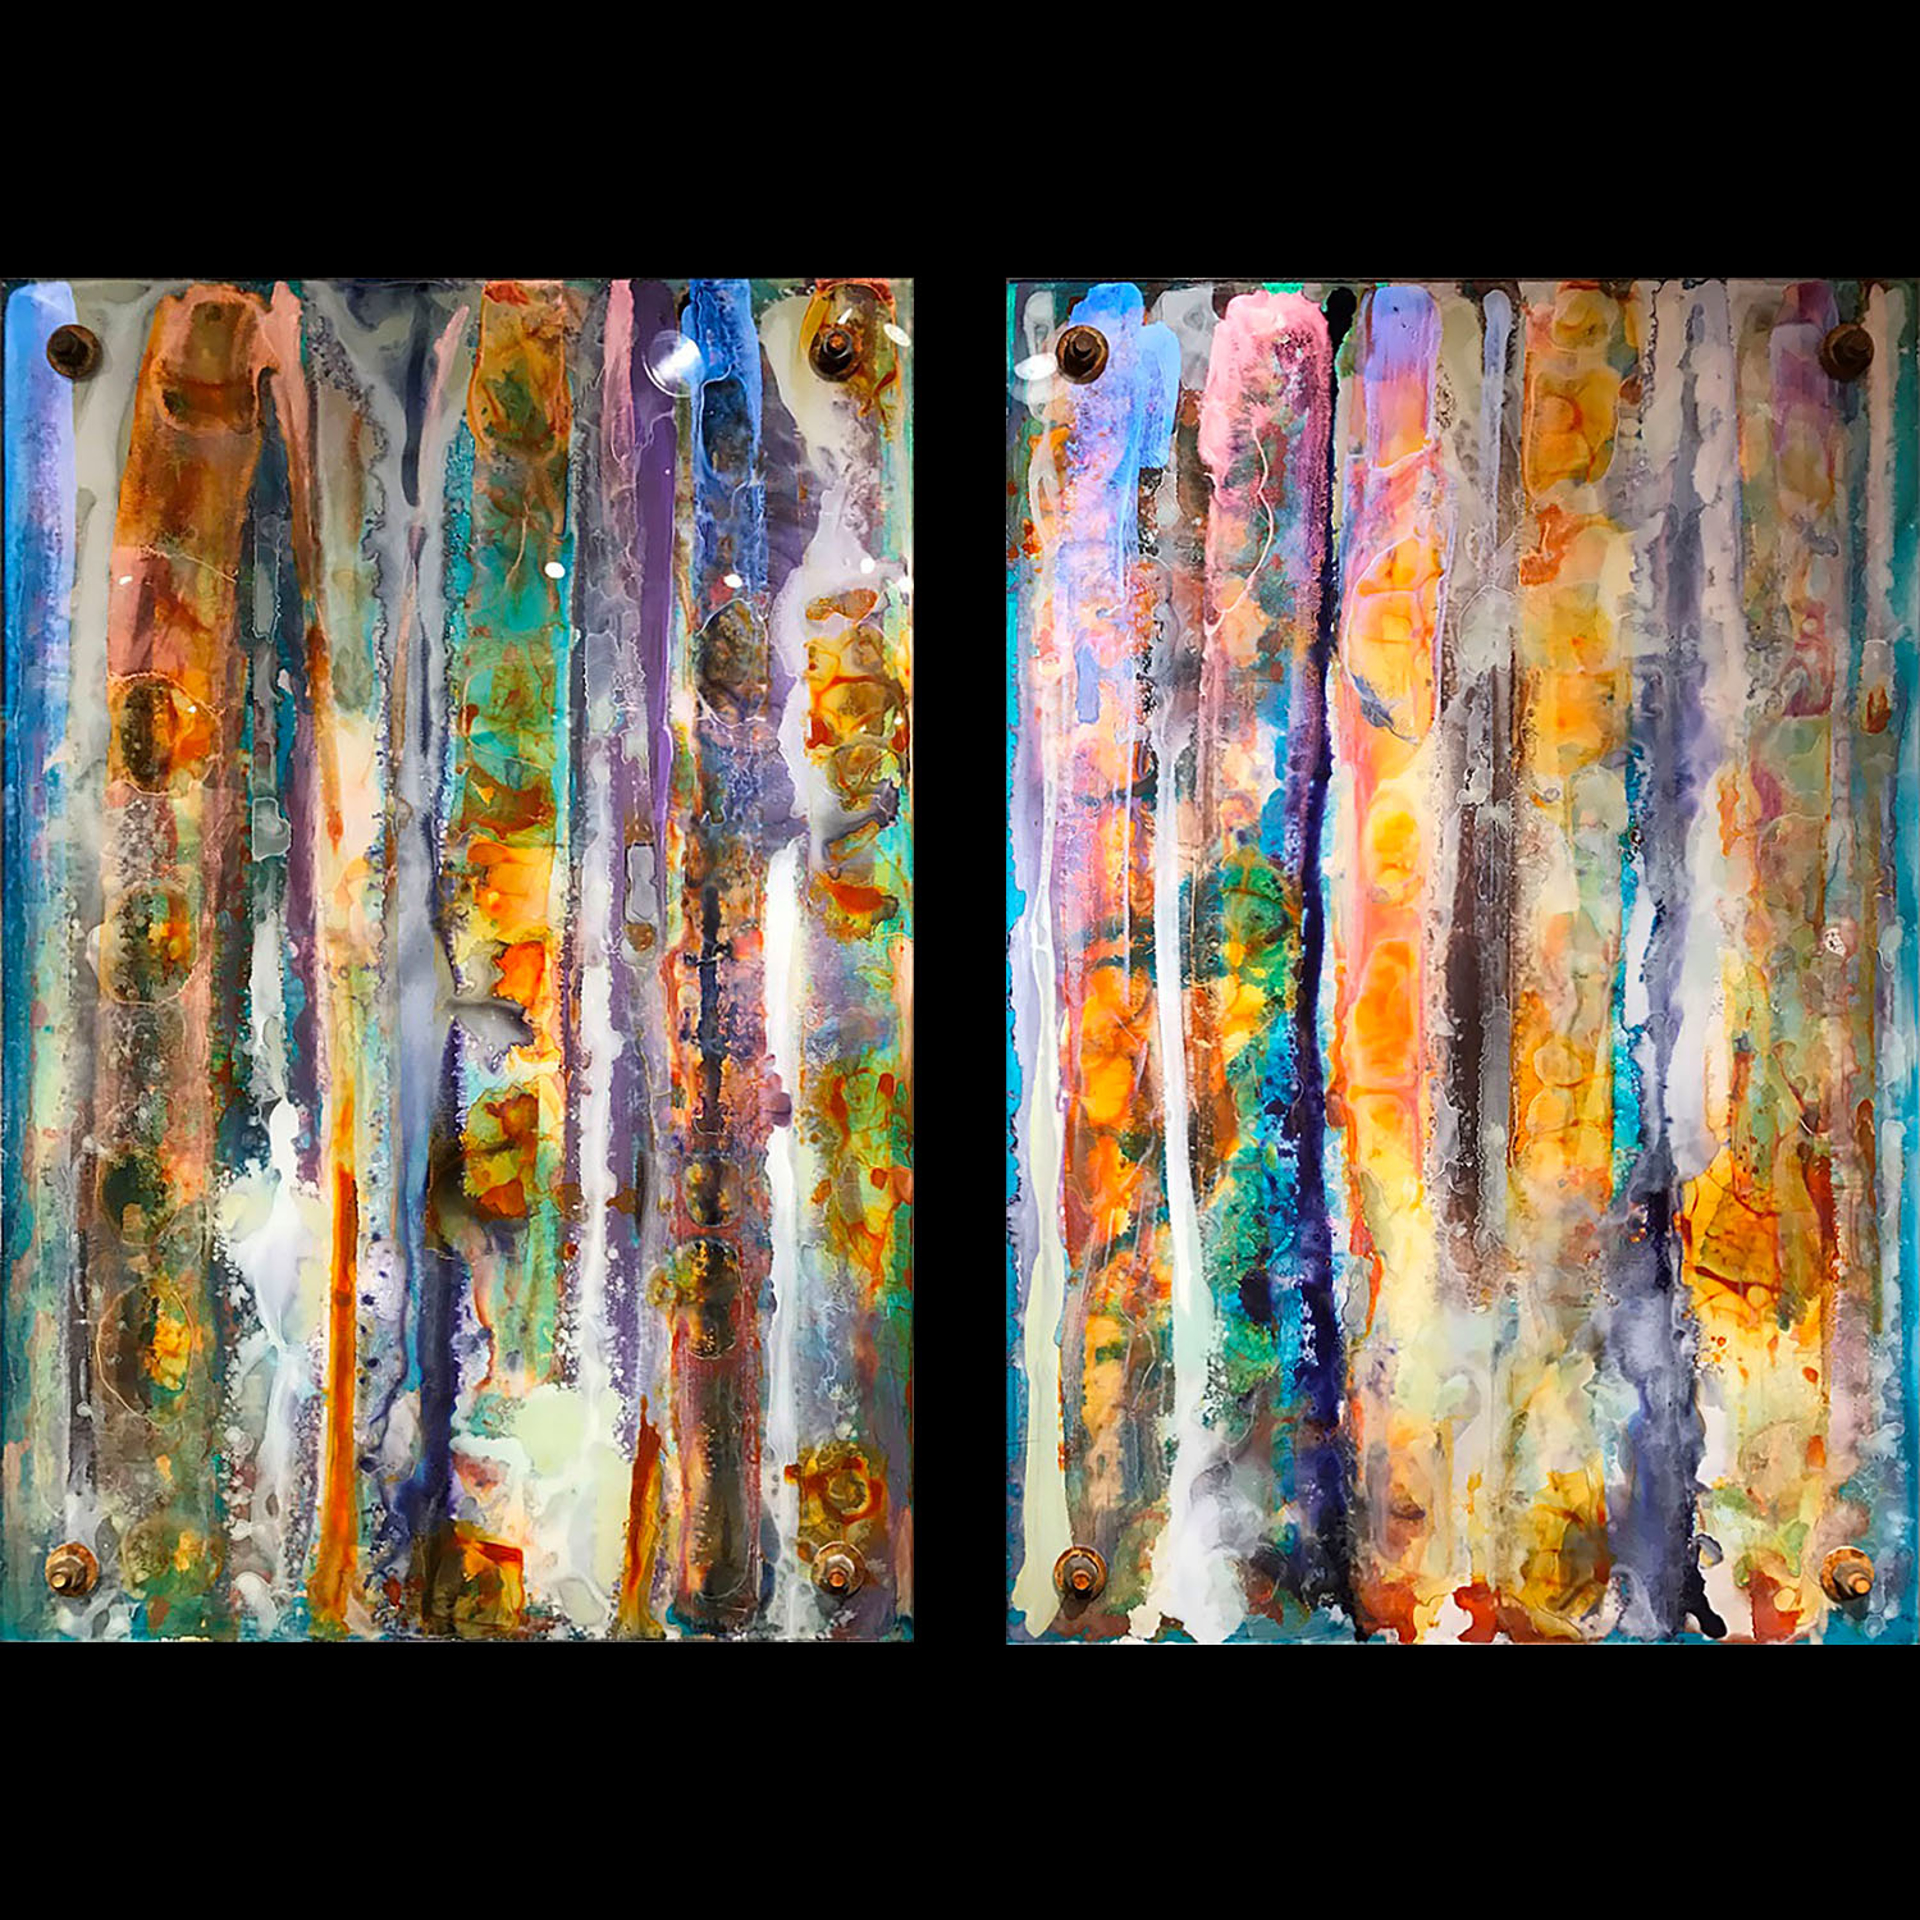 You don't know (the depth of my soul)  (diptych) by Robert Ichter